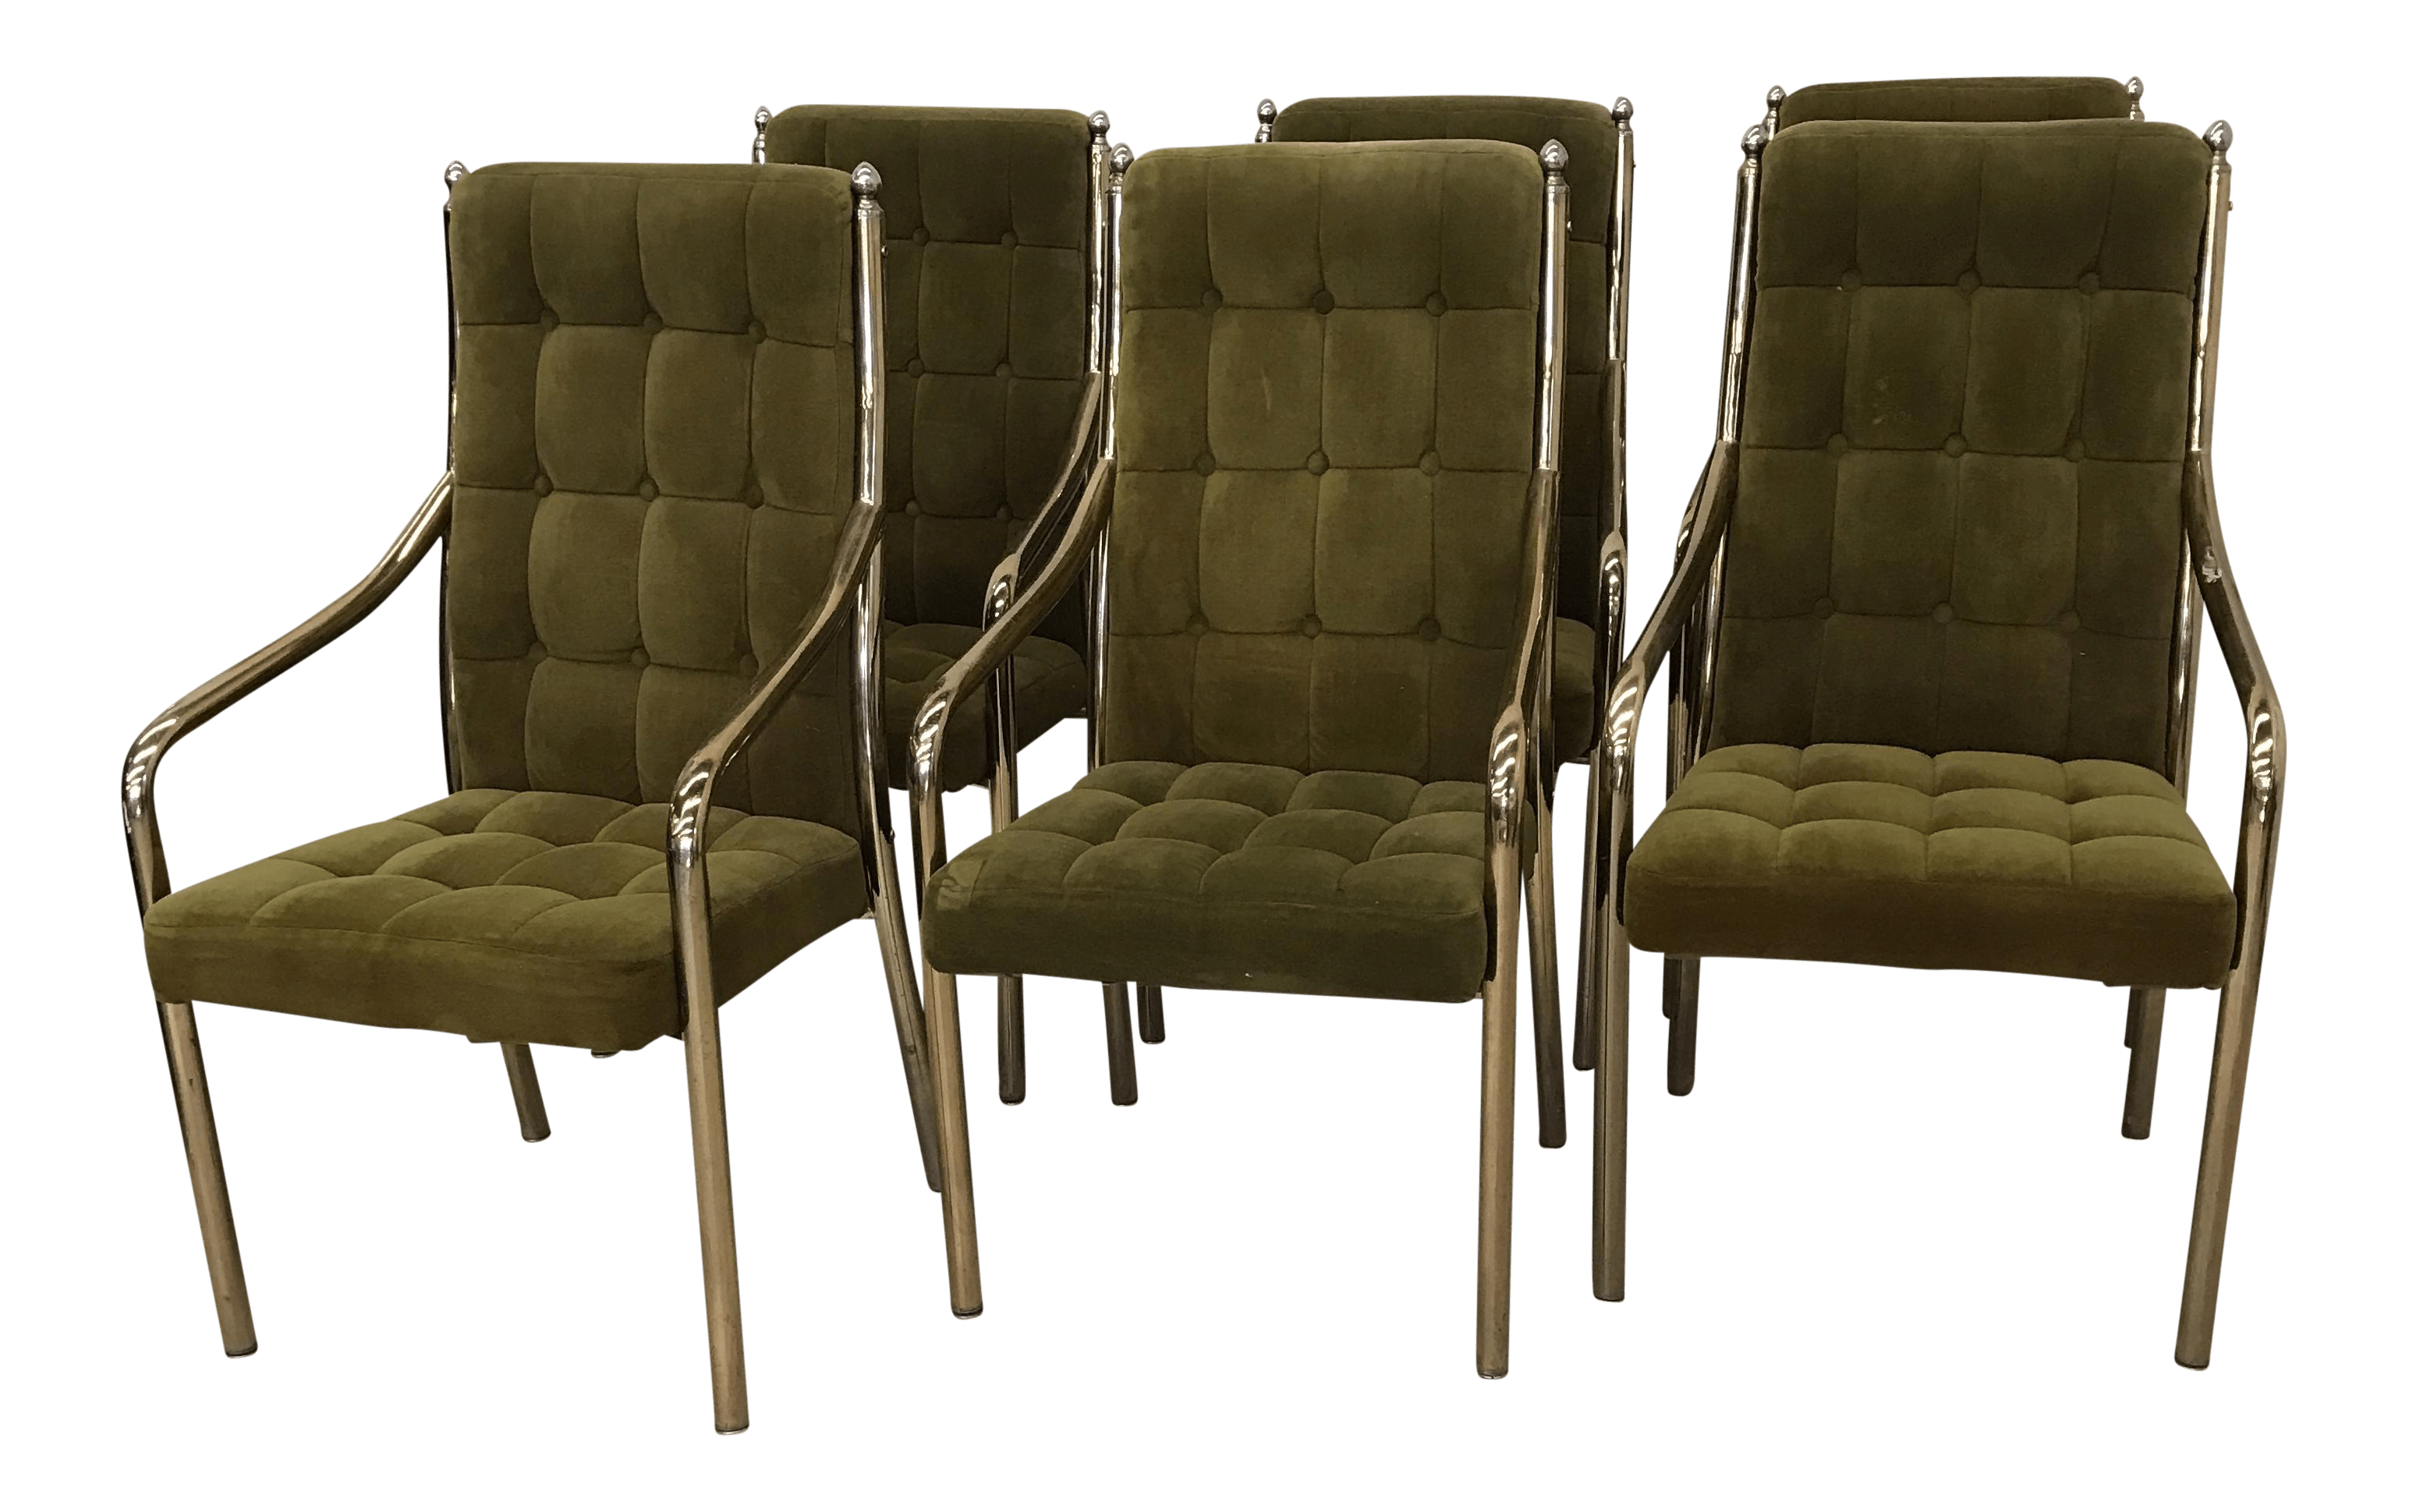 Green Velvet Dining Chairs Chromcraft Green Velvet And Brass Dining Chairs Set Of 6